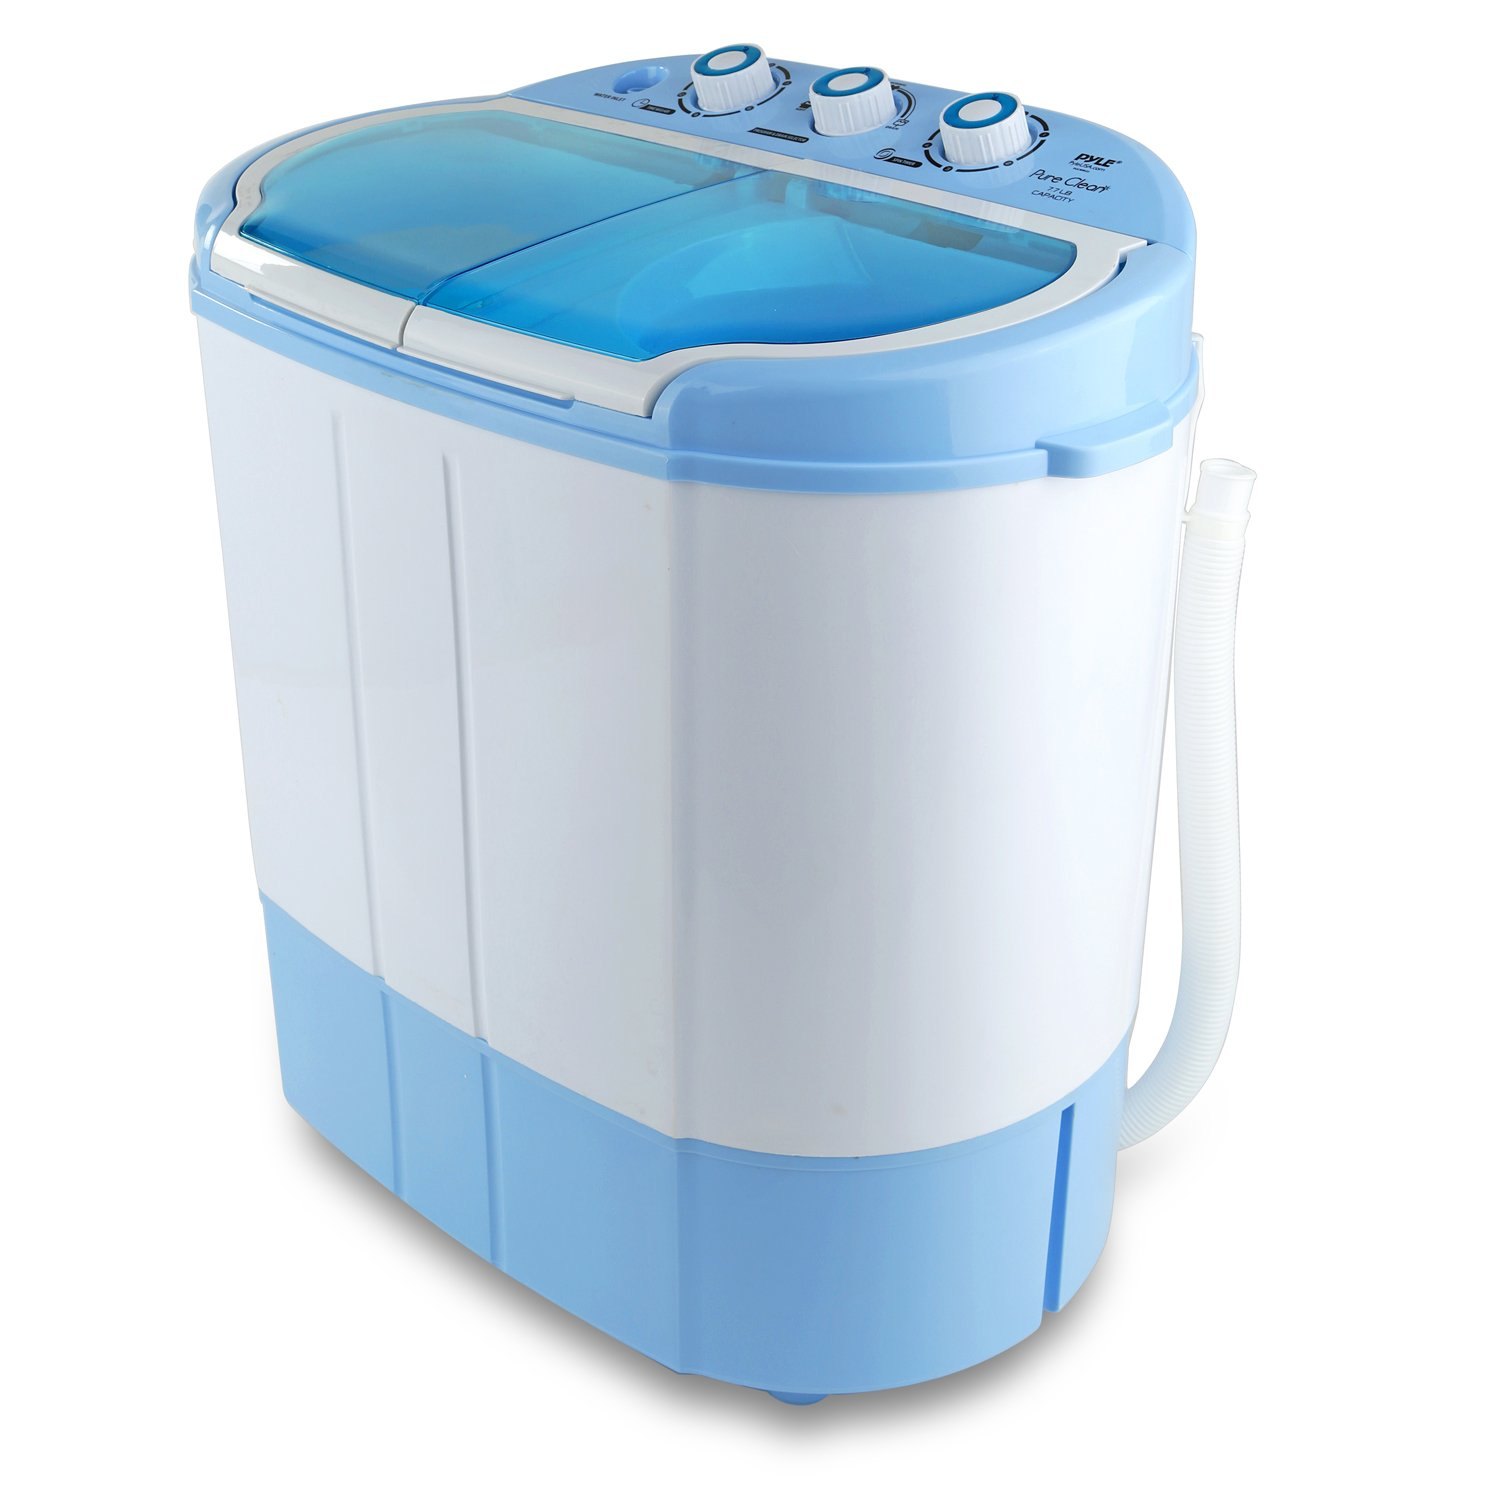 Electric Portable Washing Machine & Spin Dryer Compact Durable Design To Wash All your Laundry  Twin Tub Washer | for Apartments,  Dorms, College Rooms, RV Camping Swim Suit Spinner Dryer (PUCWM22) by Pyle